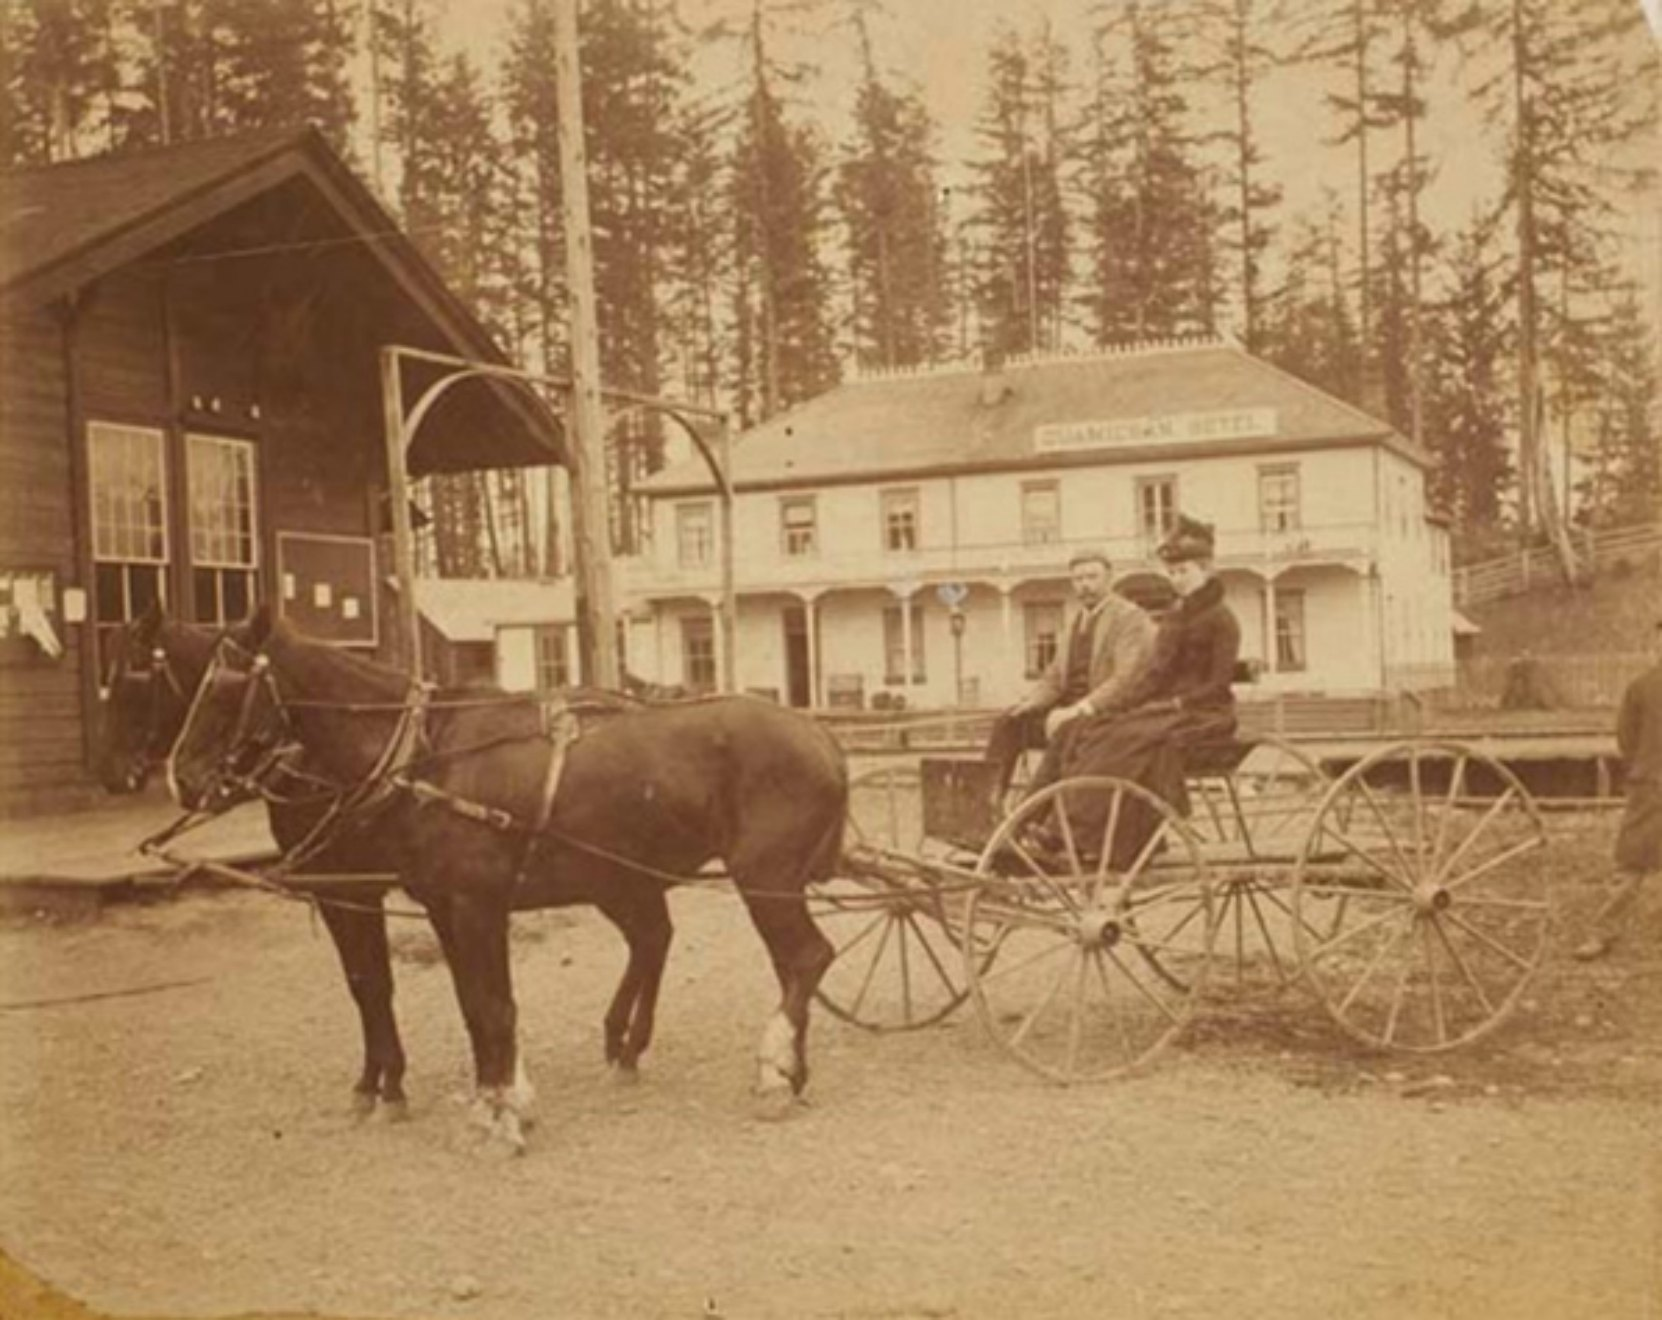 Percy Franklin Jaynes, circa 1900, with his niece Flo Jaynes, who married James Henry Whittome. The building in the left foreground is the first E&N Railway Station (photo courtesy of Keith Price)